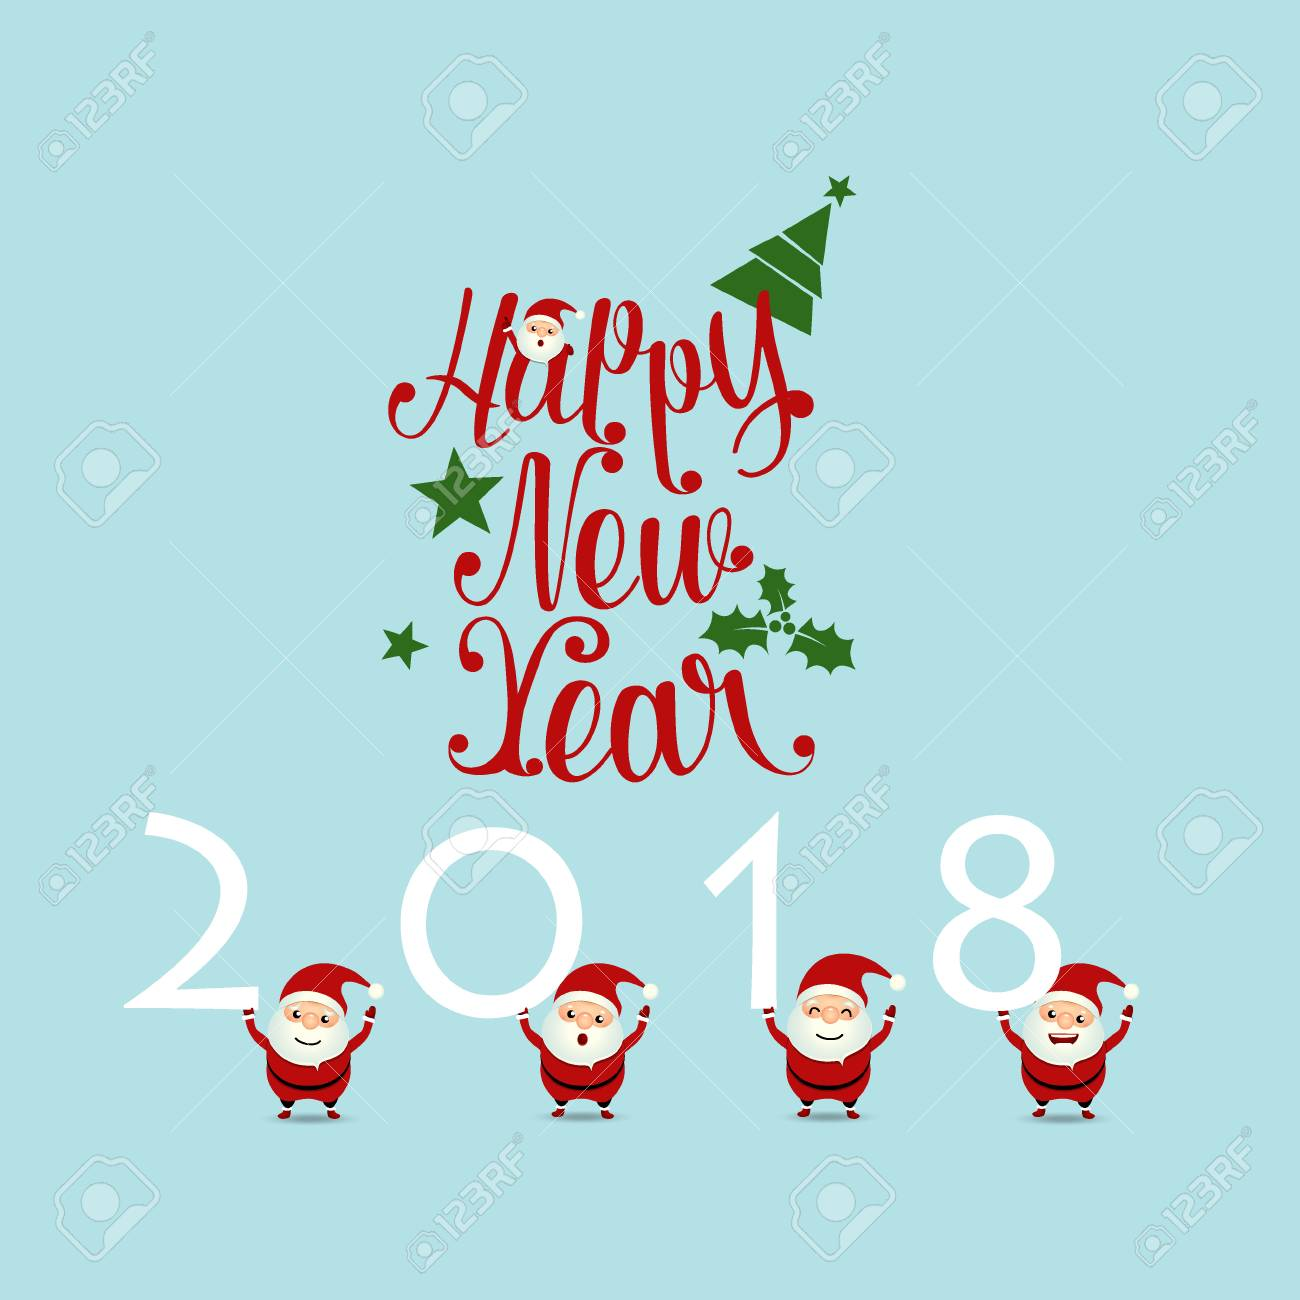 merry christmas and happy new year 2018 greeting card with santa claus vector illustration